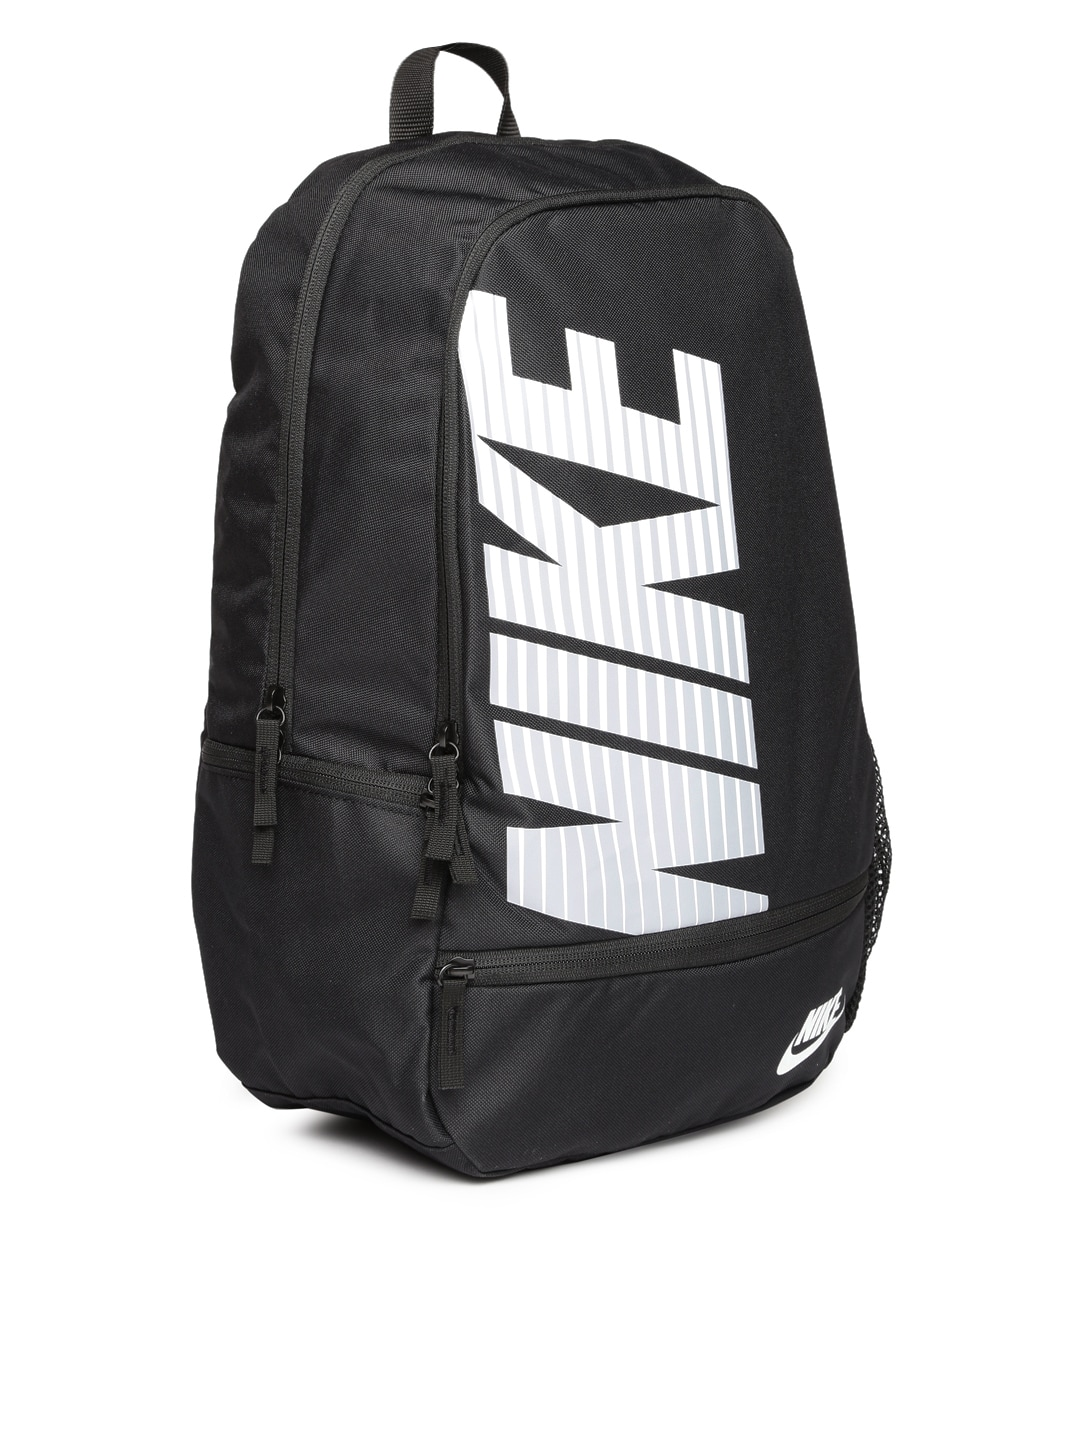 67067f2f1476 Buy nike fluorescent backpack   up to 36% Discounts